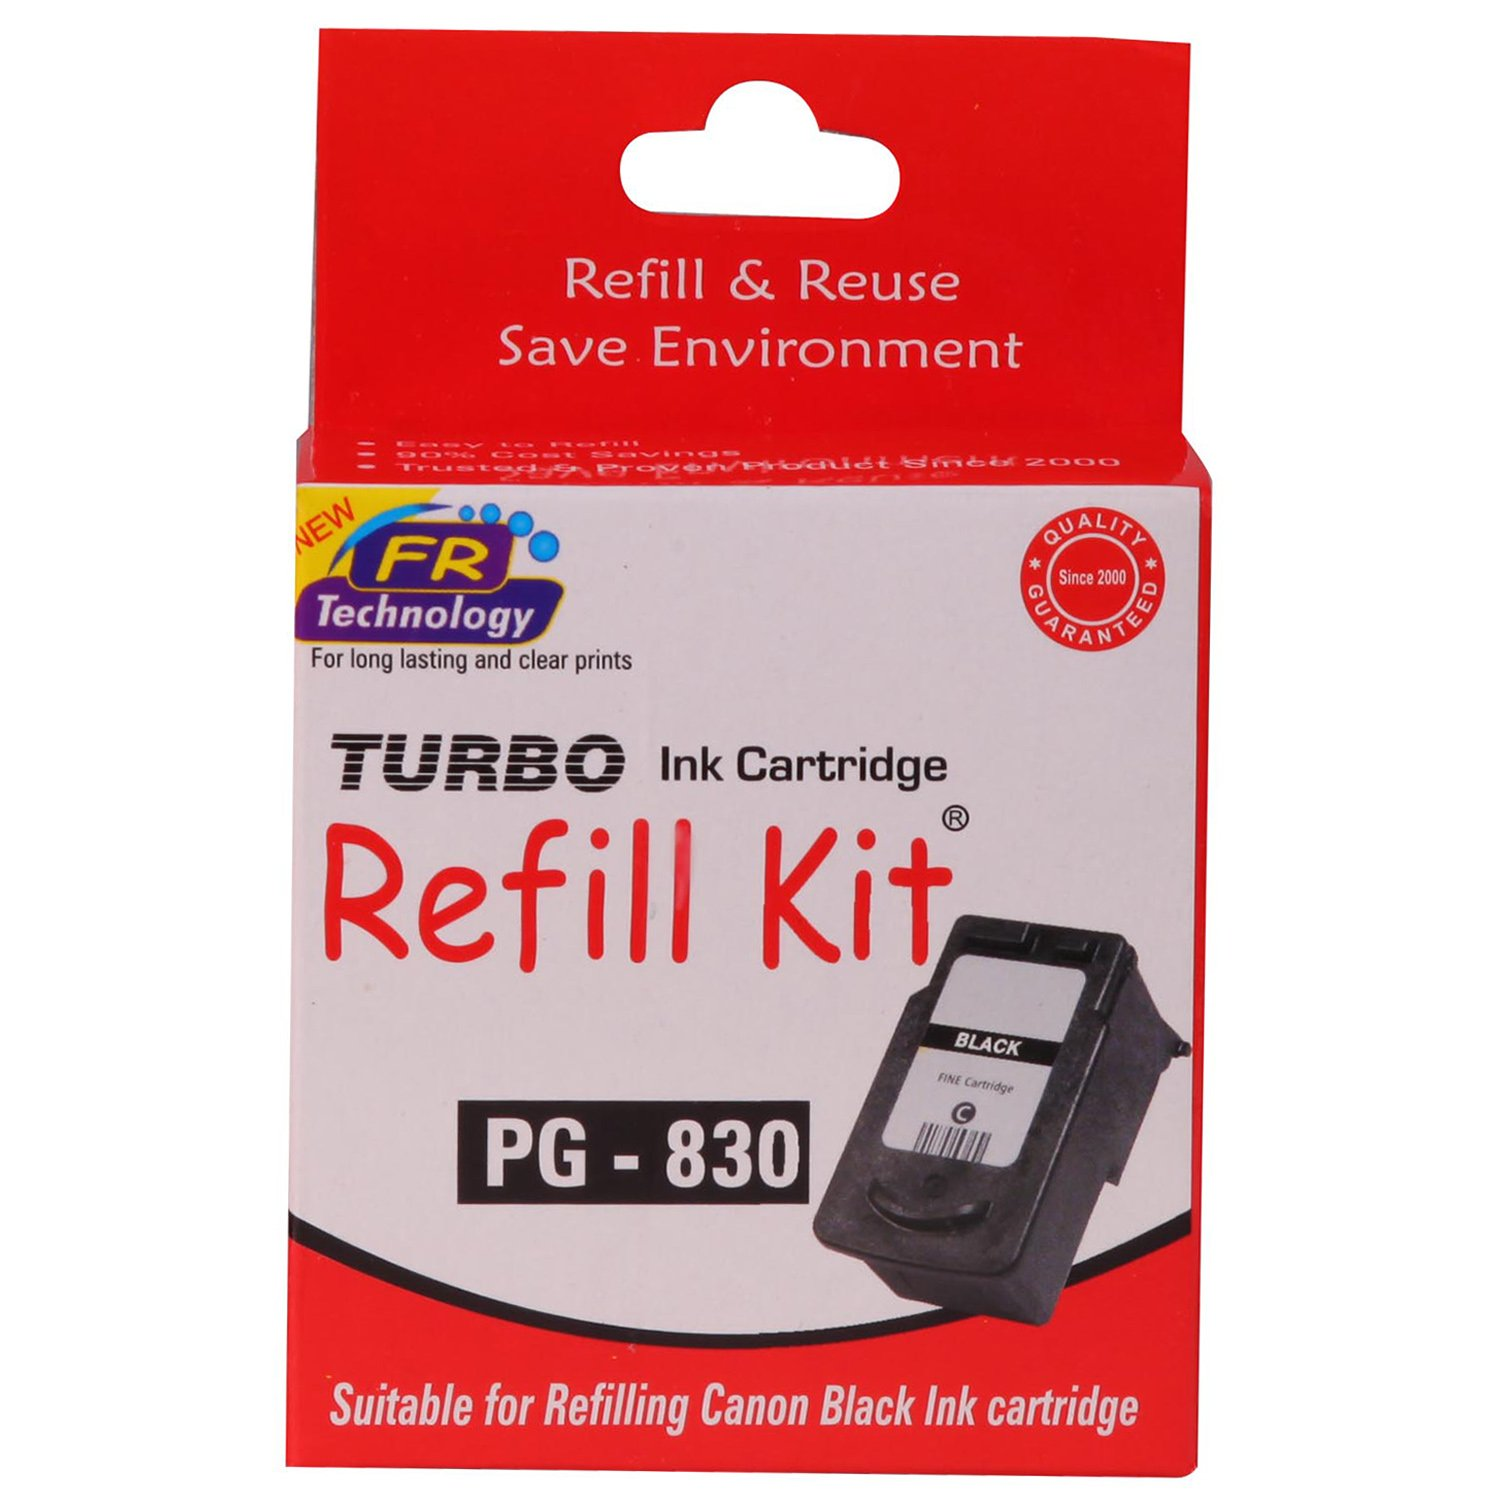 How To Refill Hp 802 Color Ink Cartridge Tutorial